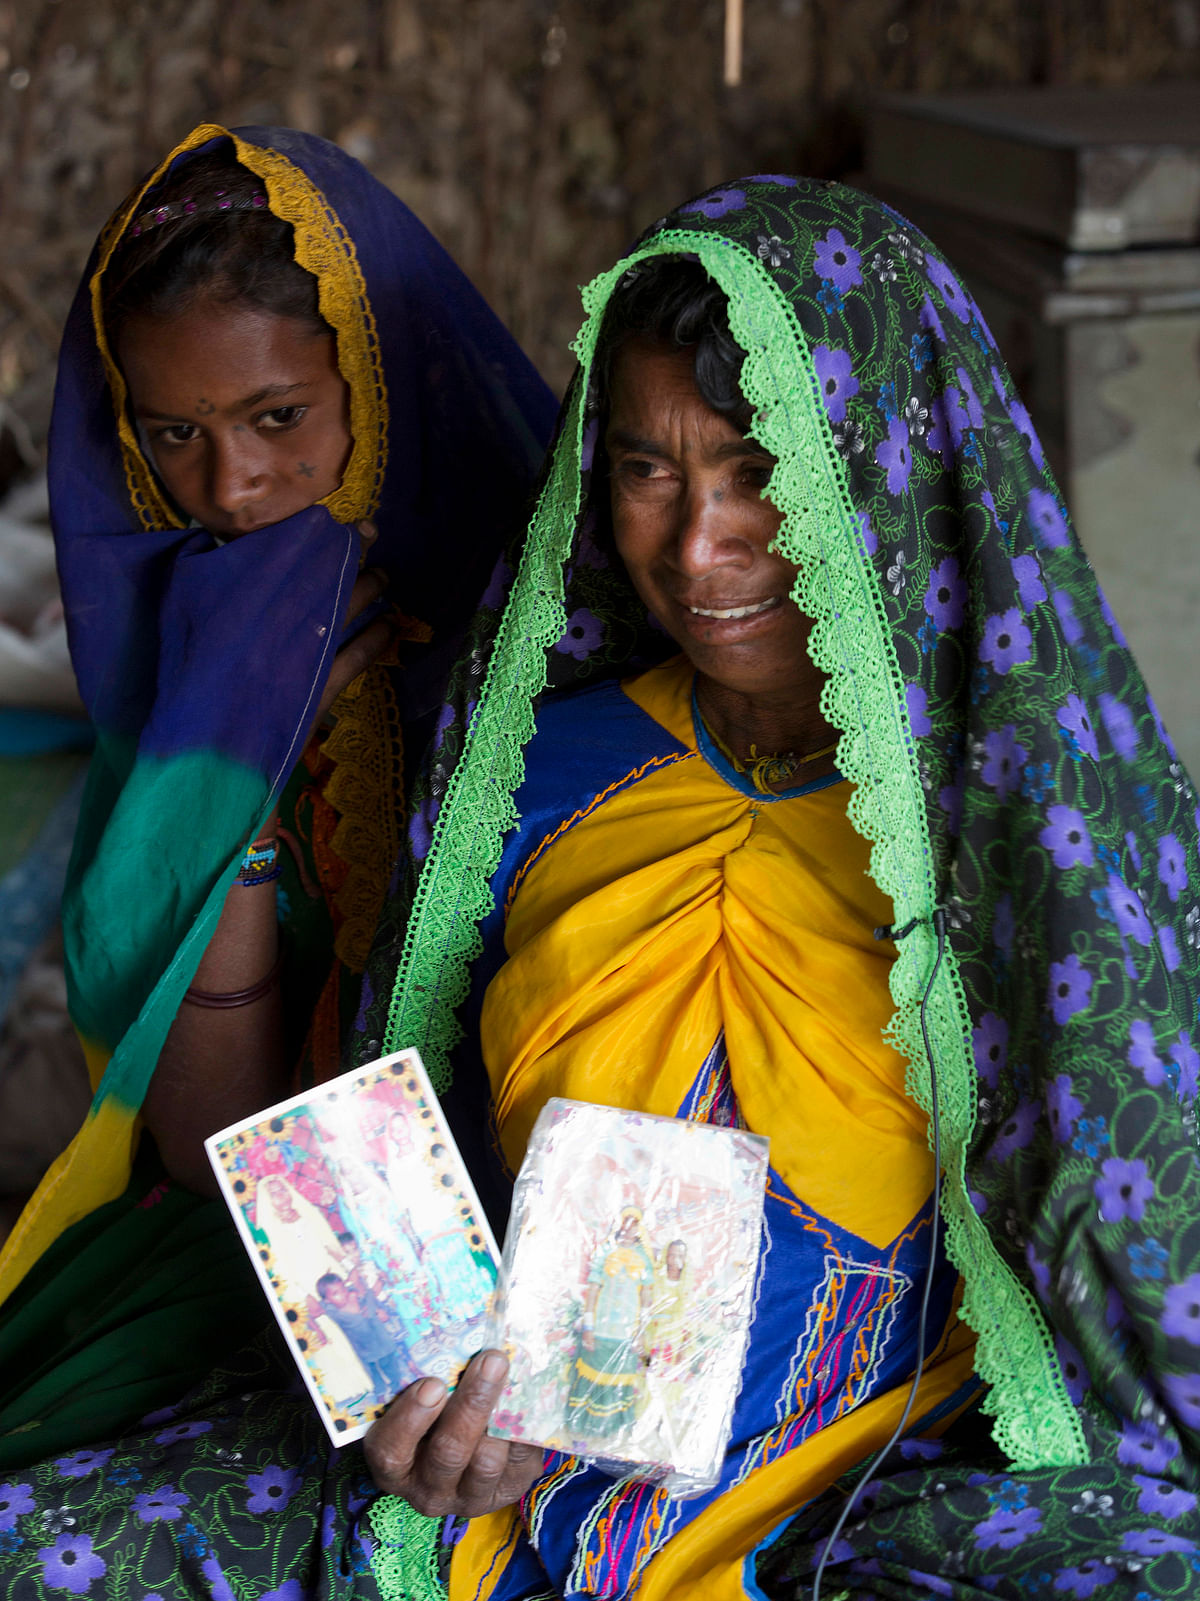 Ameri Kashi Kolhi, right, in tears remembering her daughter while holding her pictures of Jeevti, with her younger daughter Saveeta in Mir Pur Khas, Pakistan. (Photo: AP)